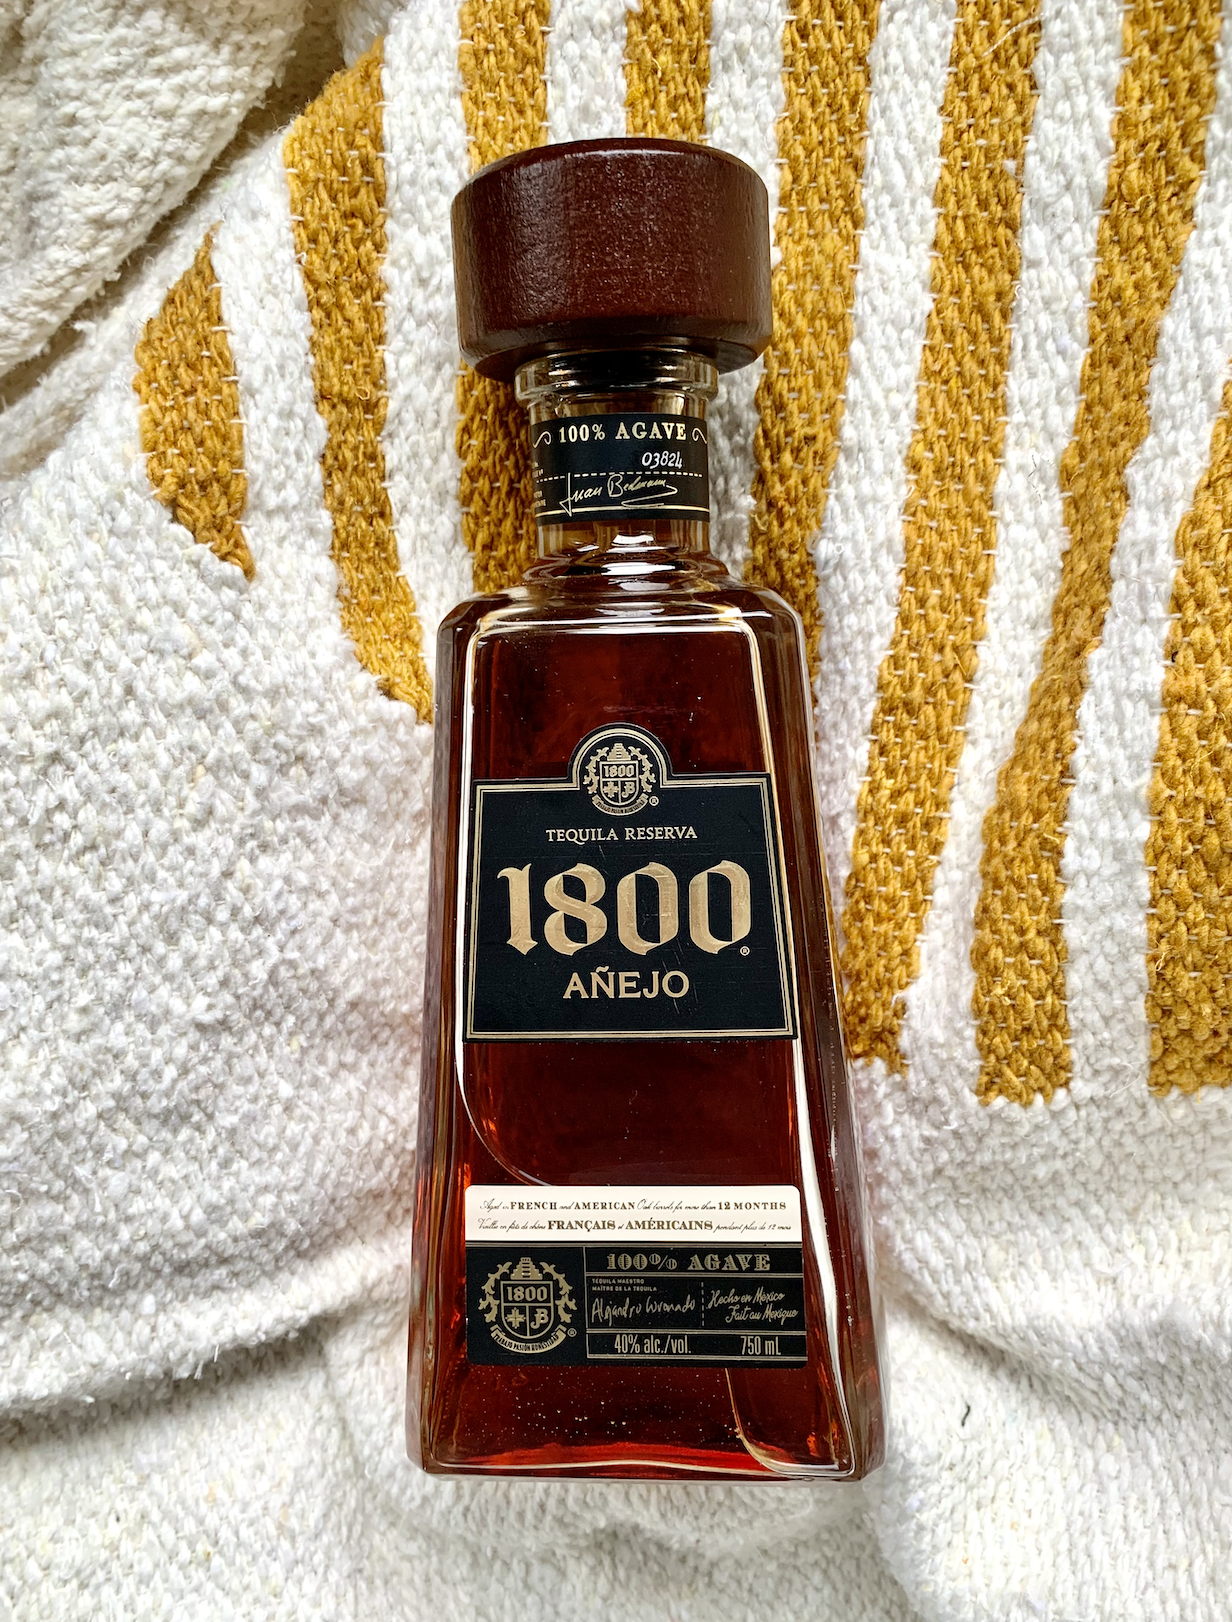 A bottle of 1800 Anejo against a a white and yellow fabric.